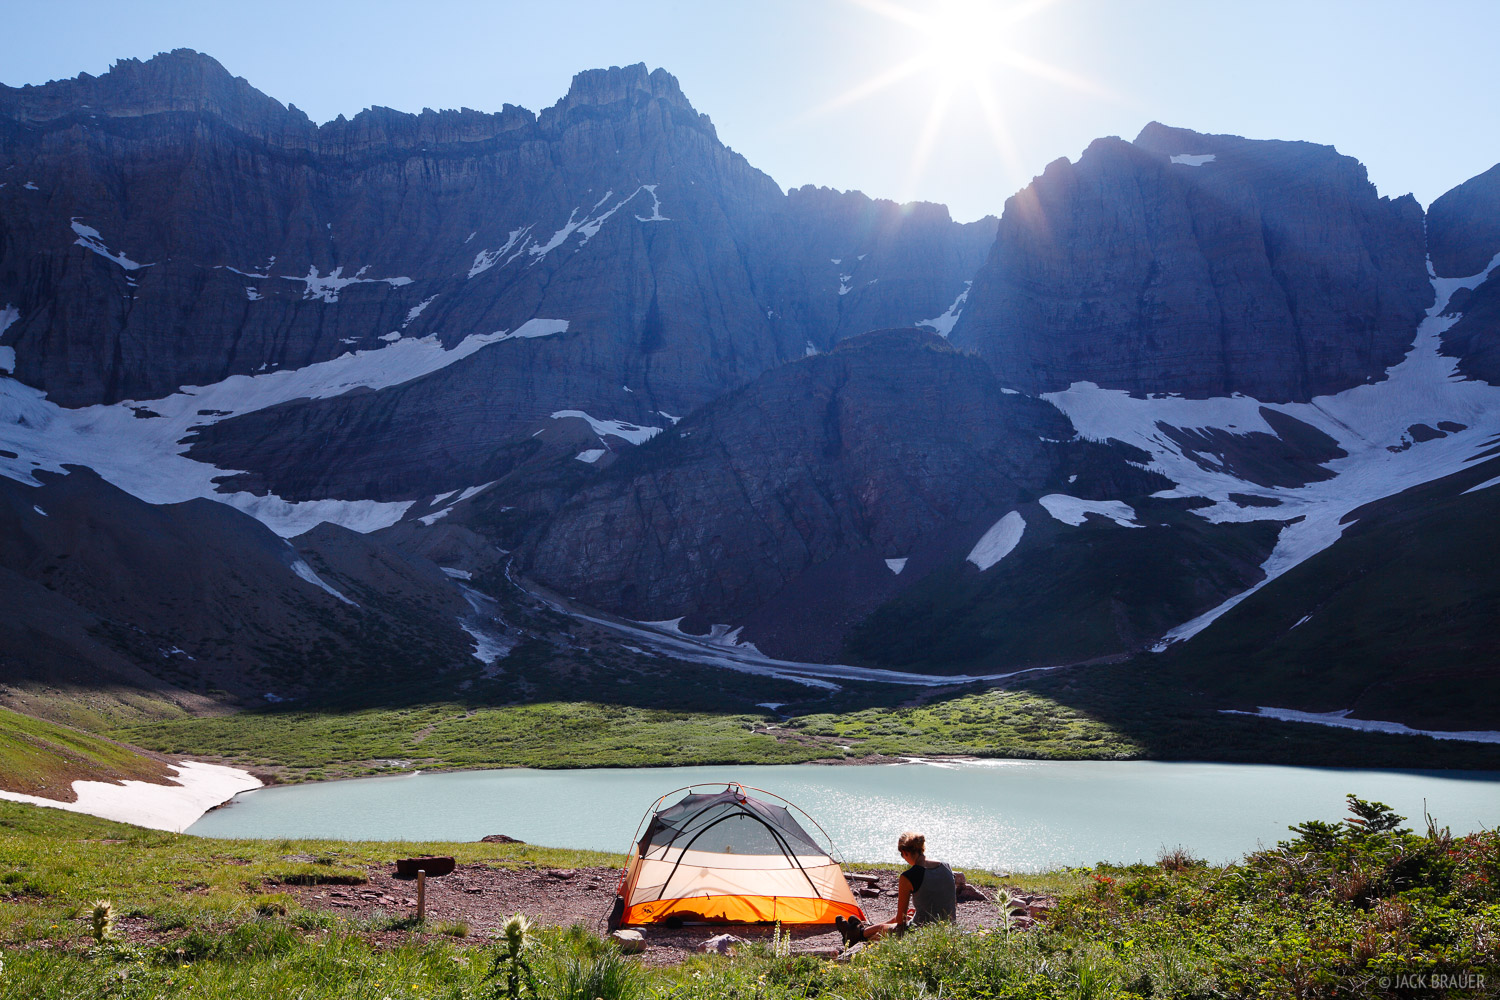 Camping at Cracker Lake